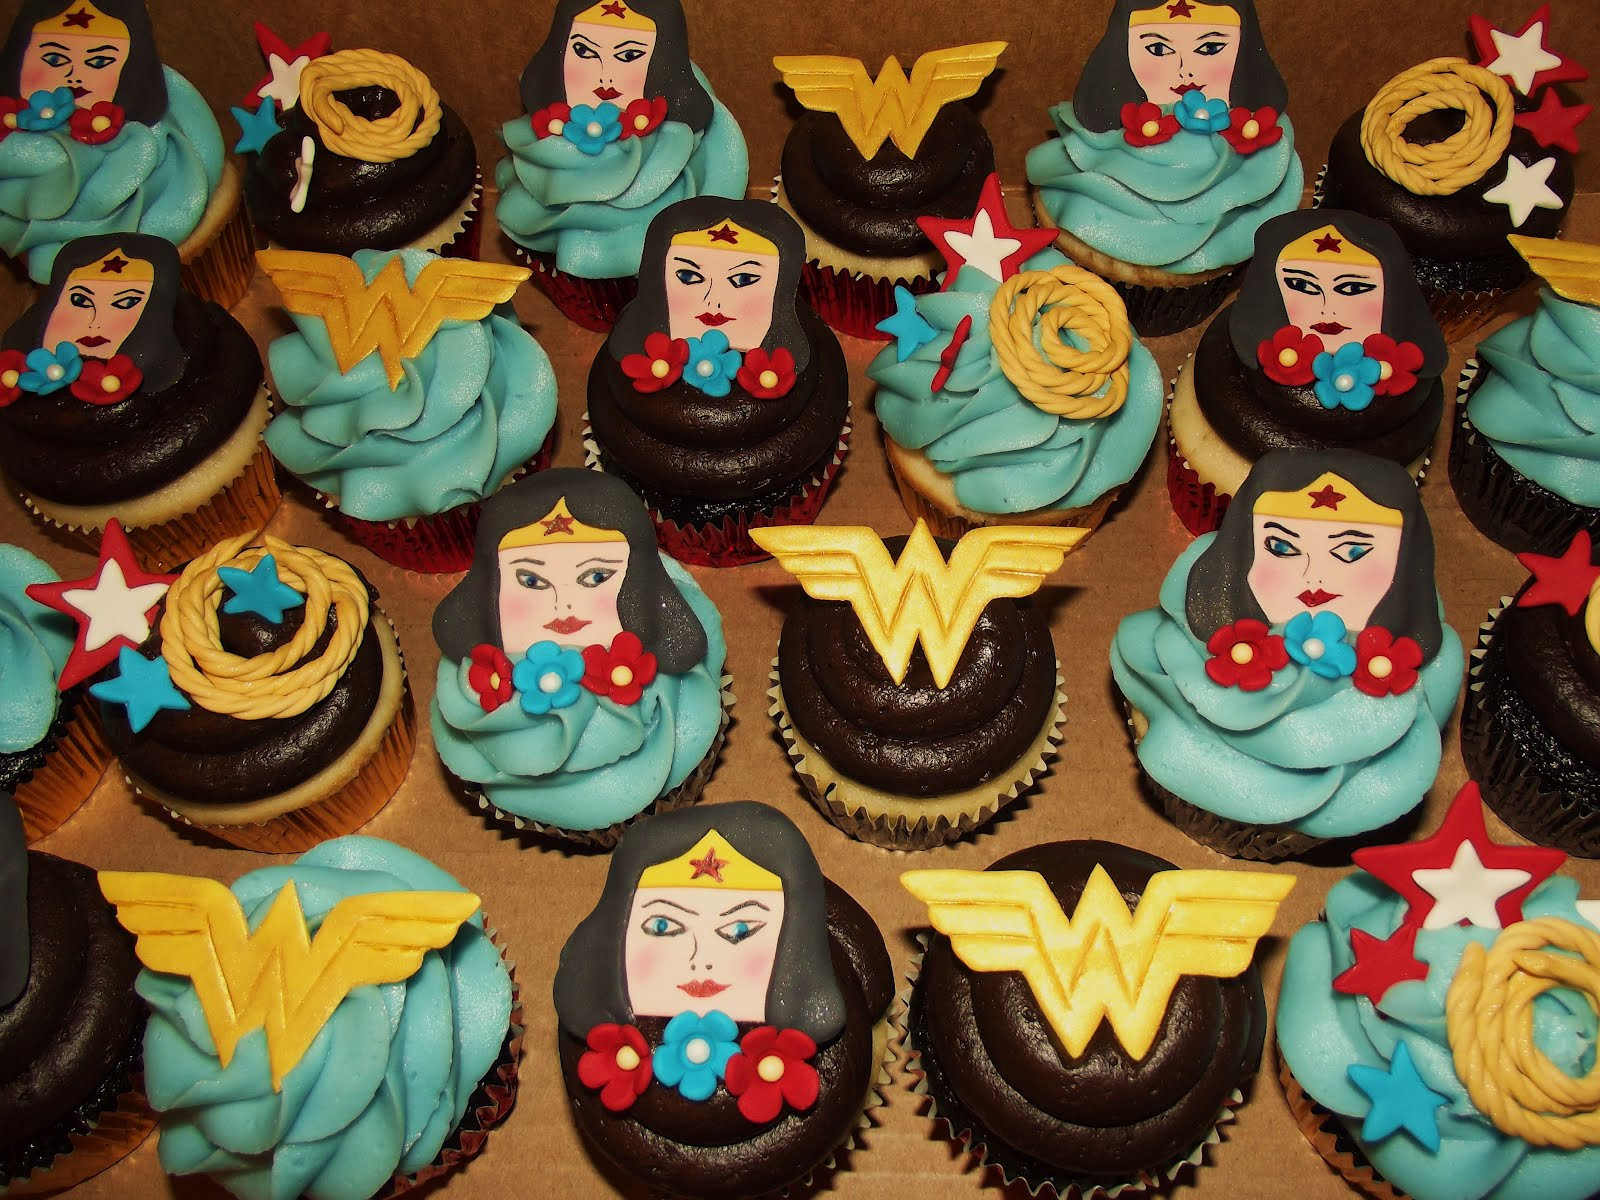 Wonder Woman Cupcakes  Suzy s Sweet Shoppe Wonder Woman Lego Ninjago Cupcakes